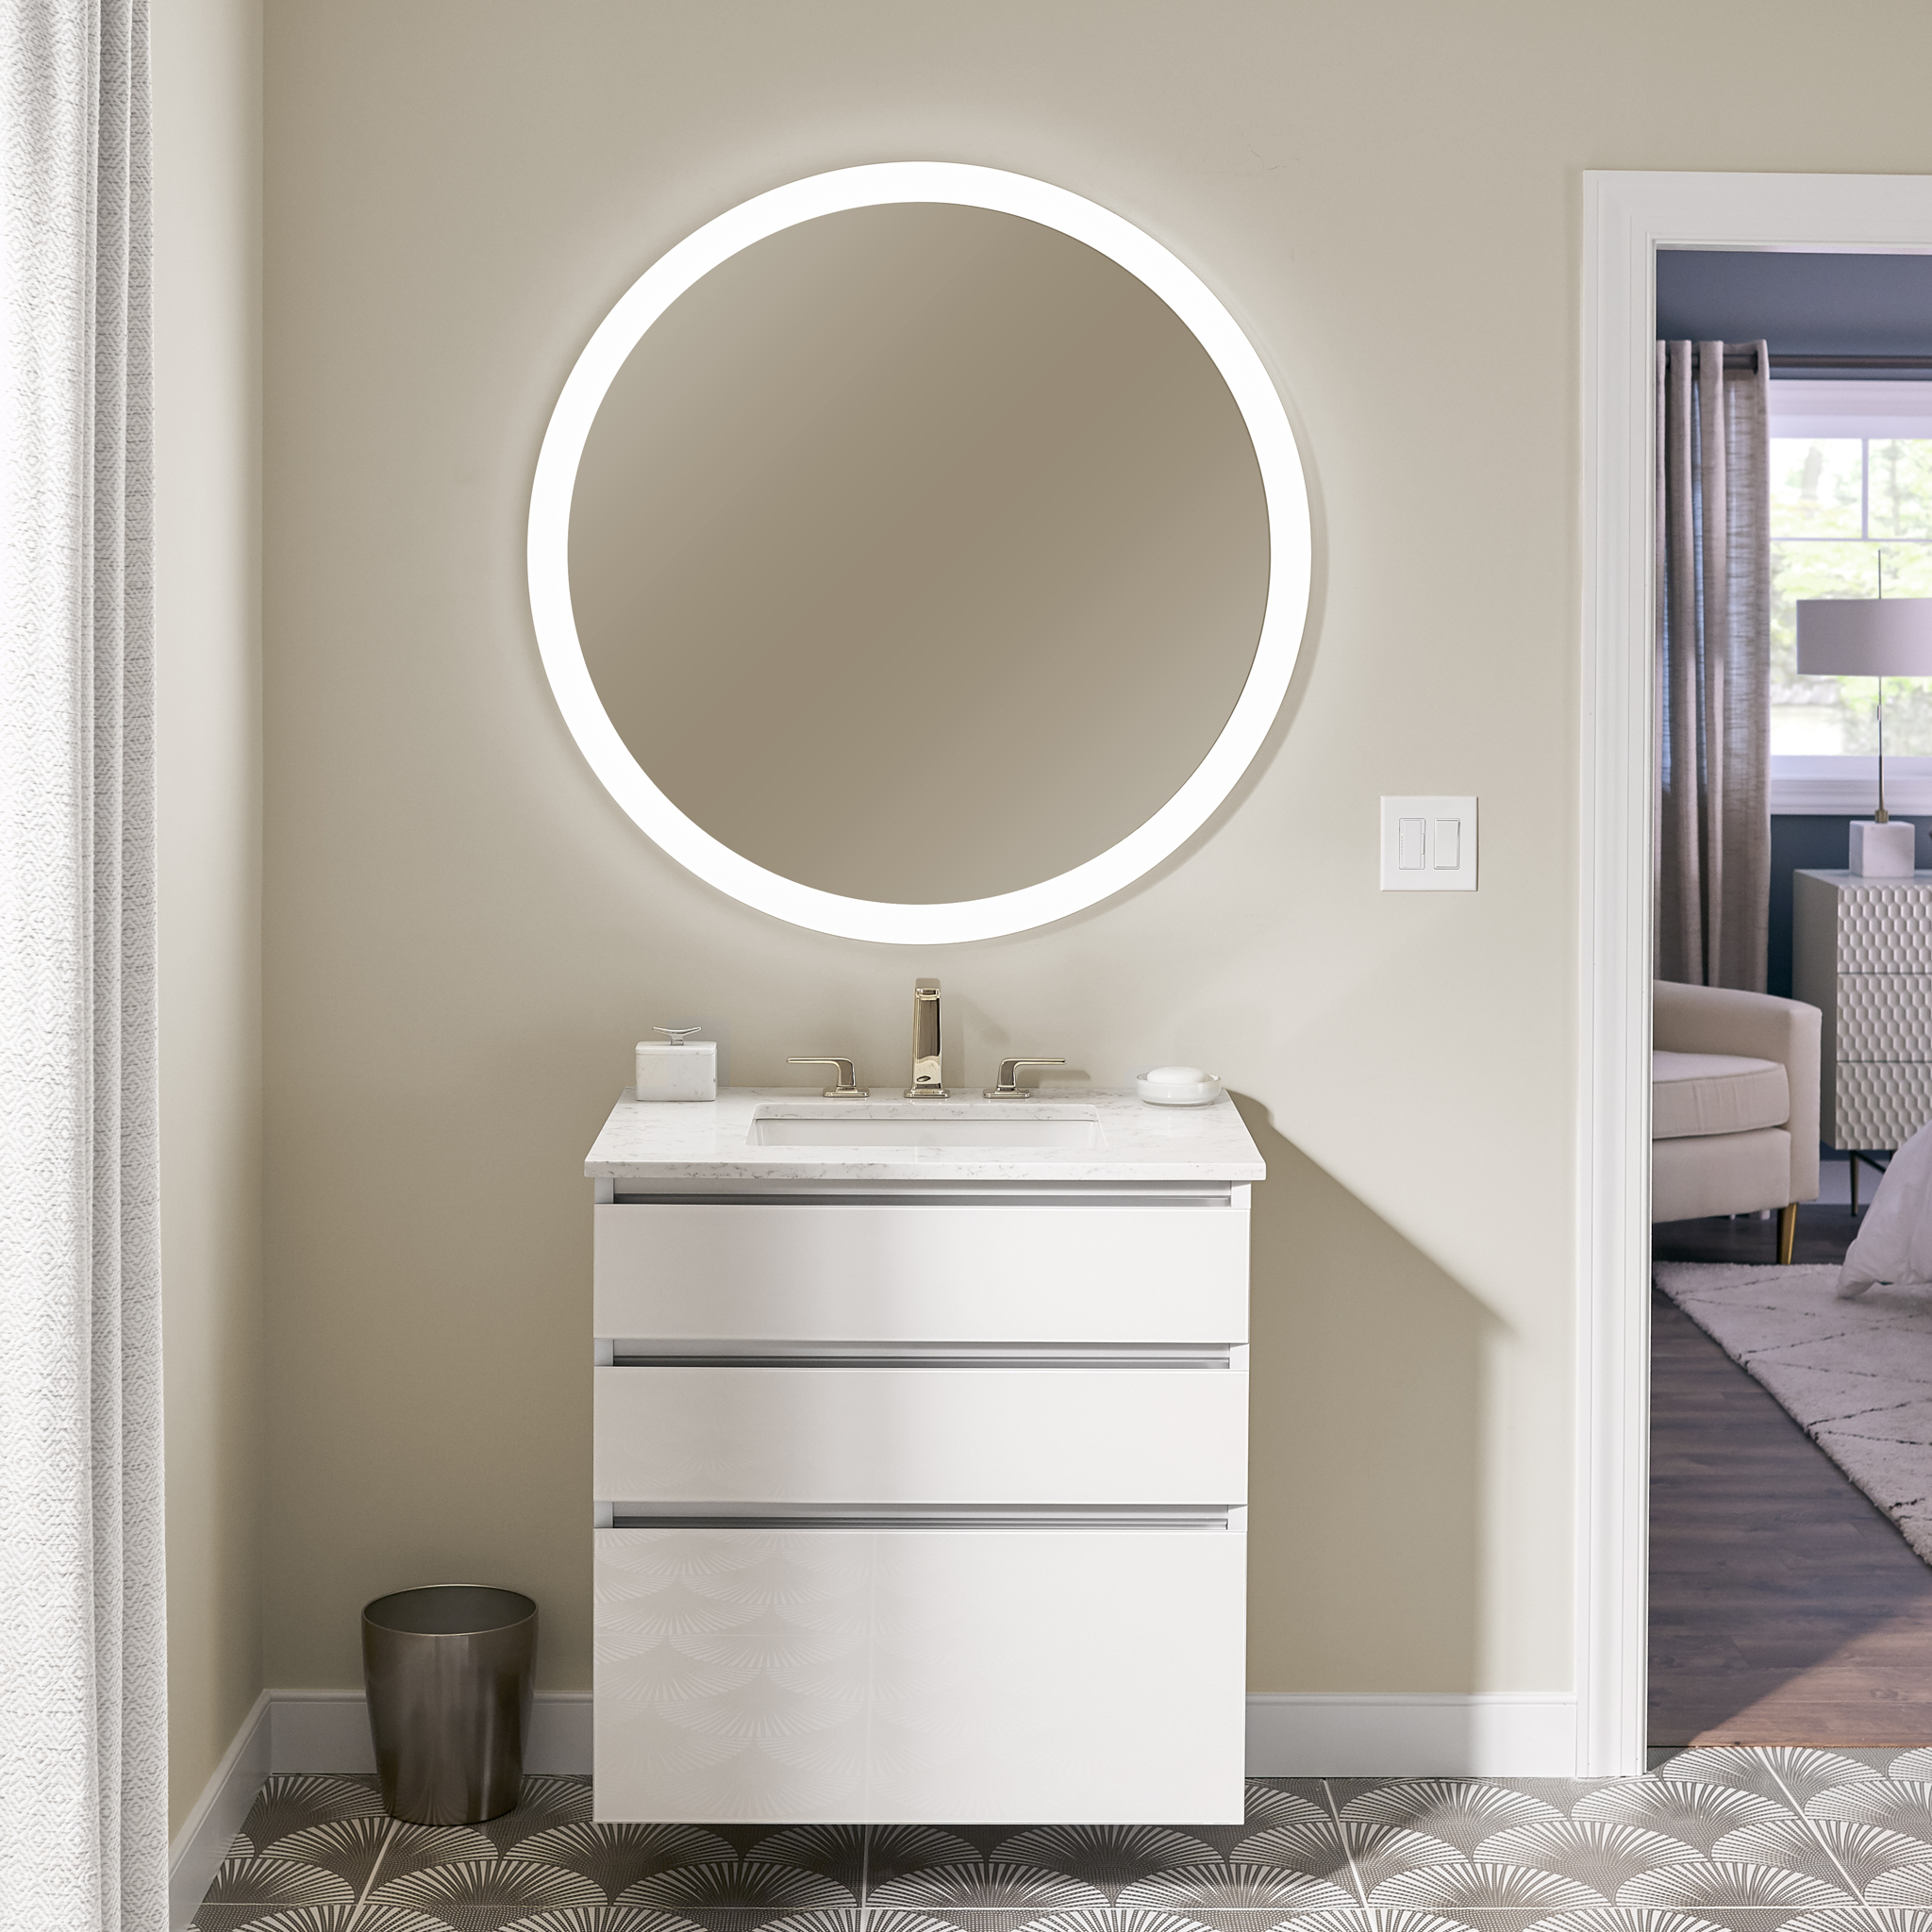 Robernu0027s New Vitality Line Brings High End Lighted Mirrors To  Budget Conscious Projects | Robern